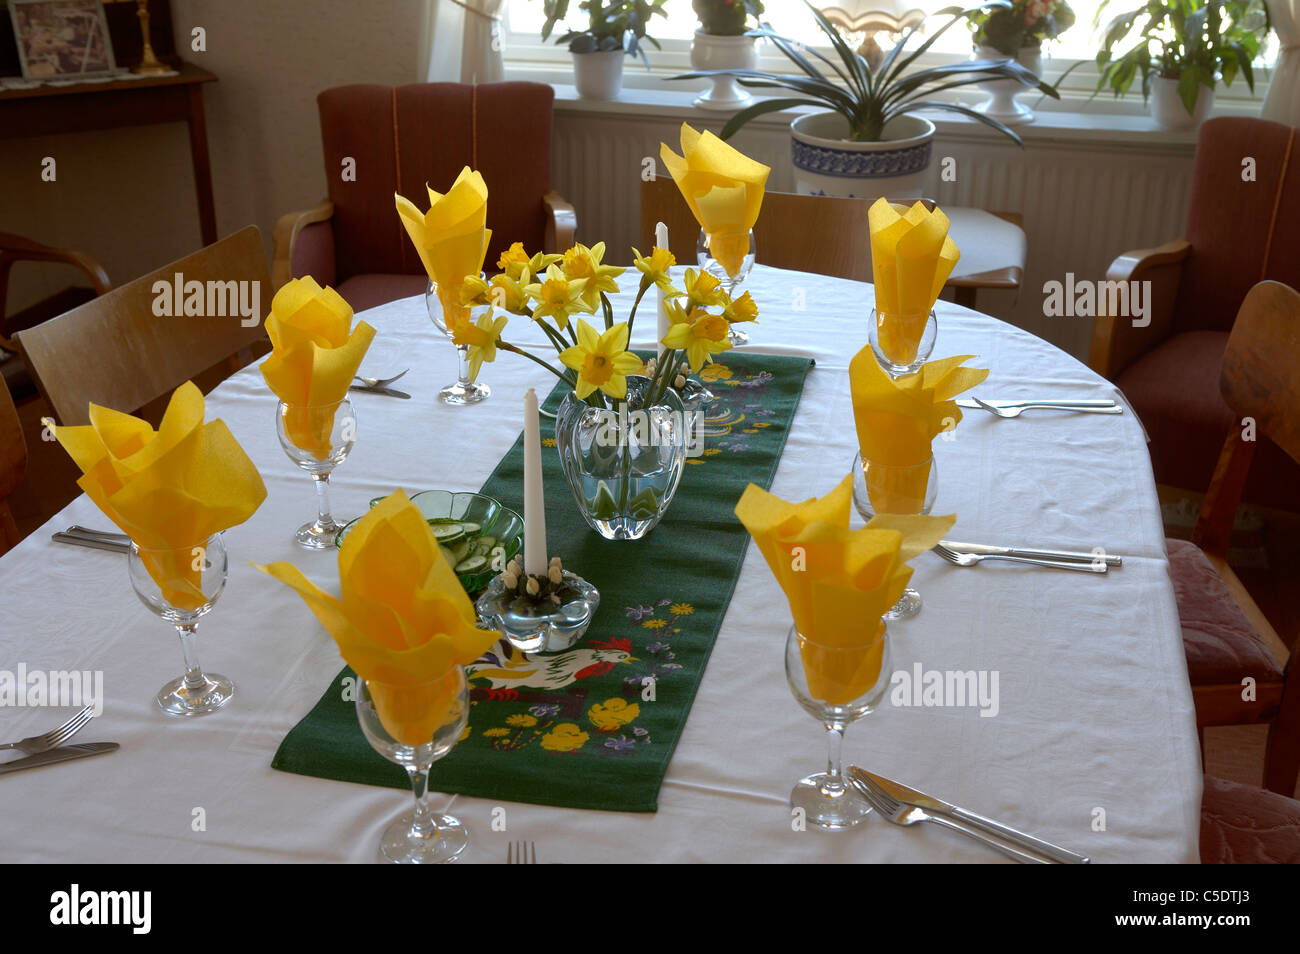 Close-up of set Easter dinner table with yellow napkins in glasses - Stock Image